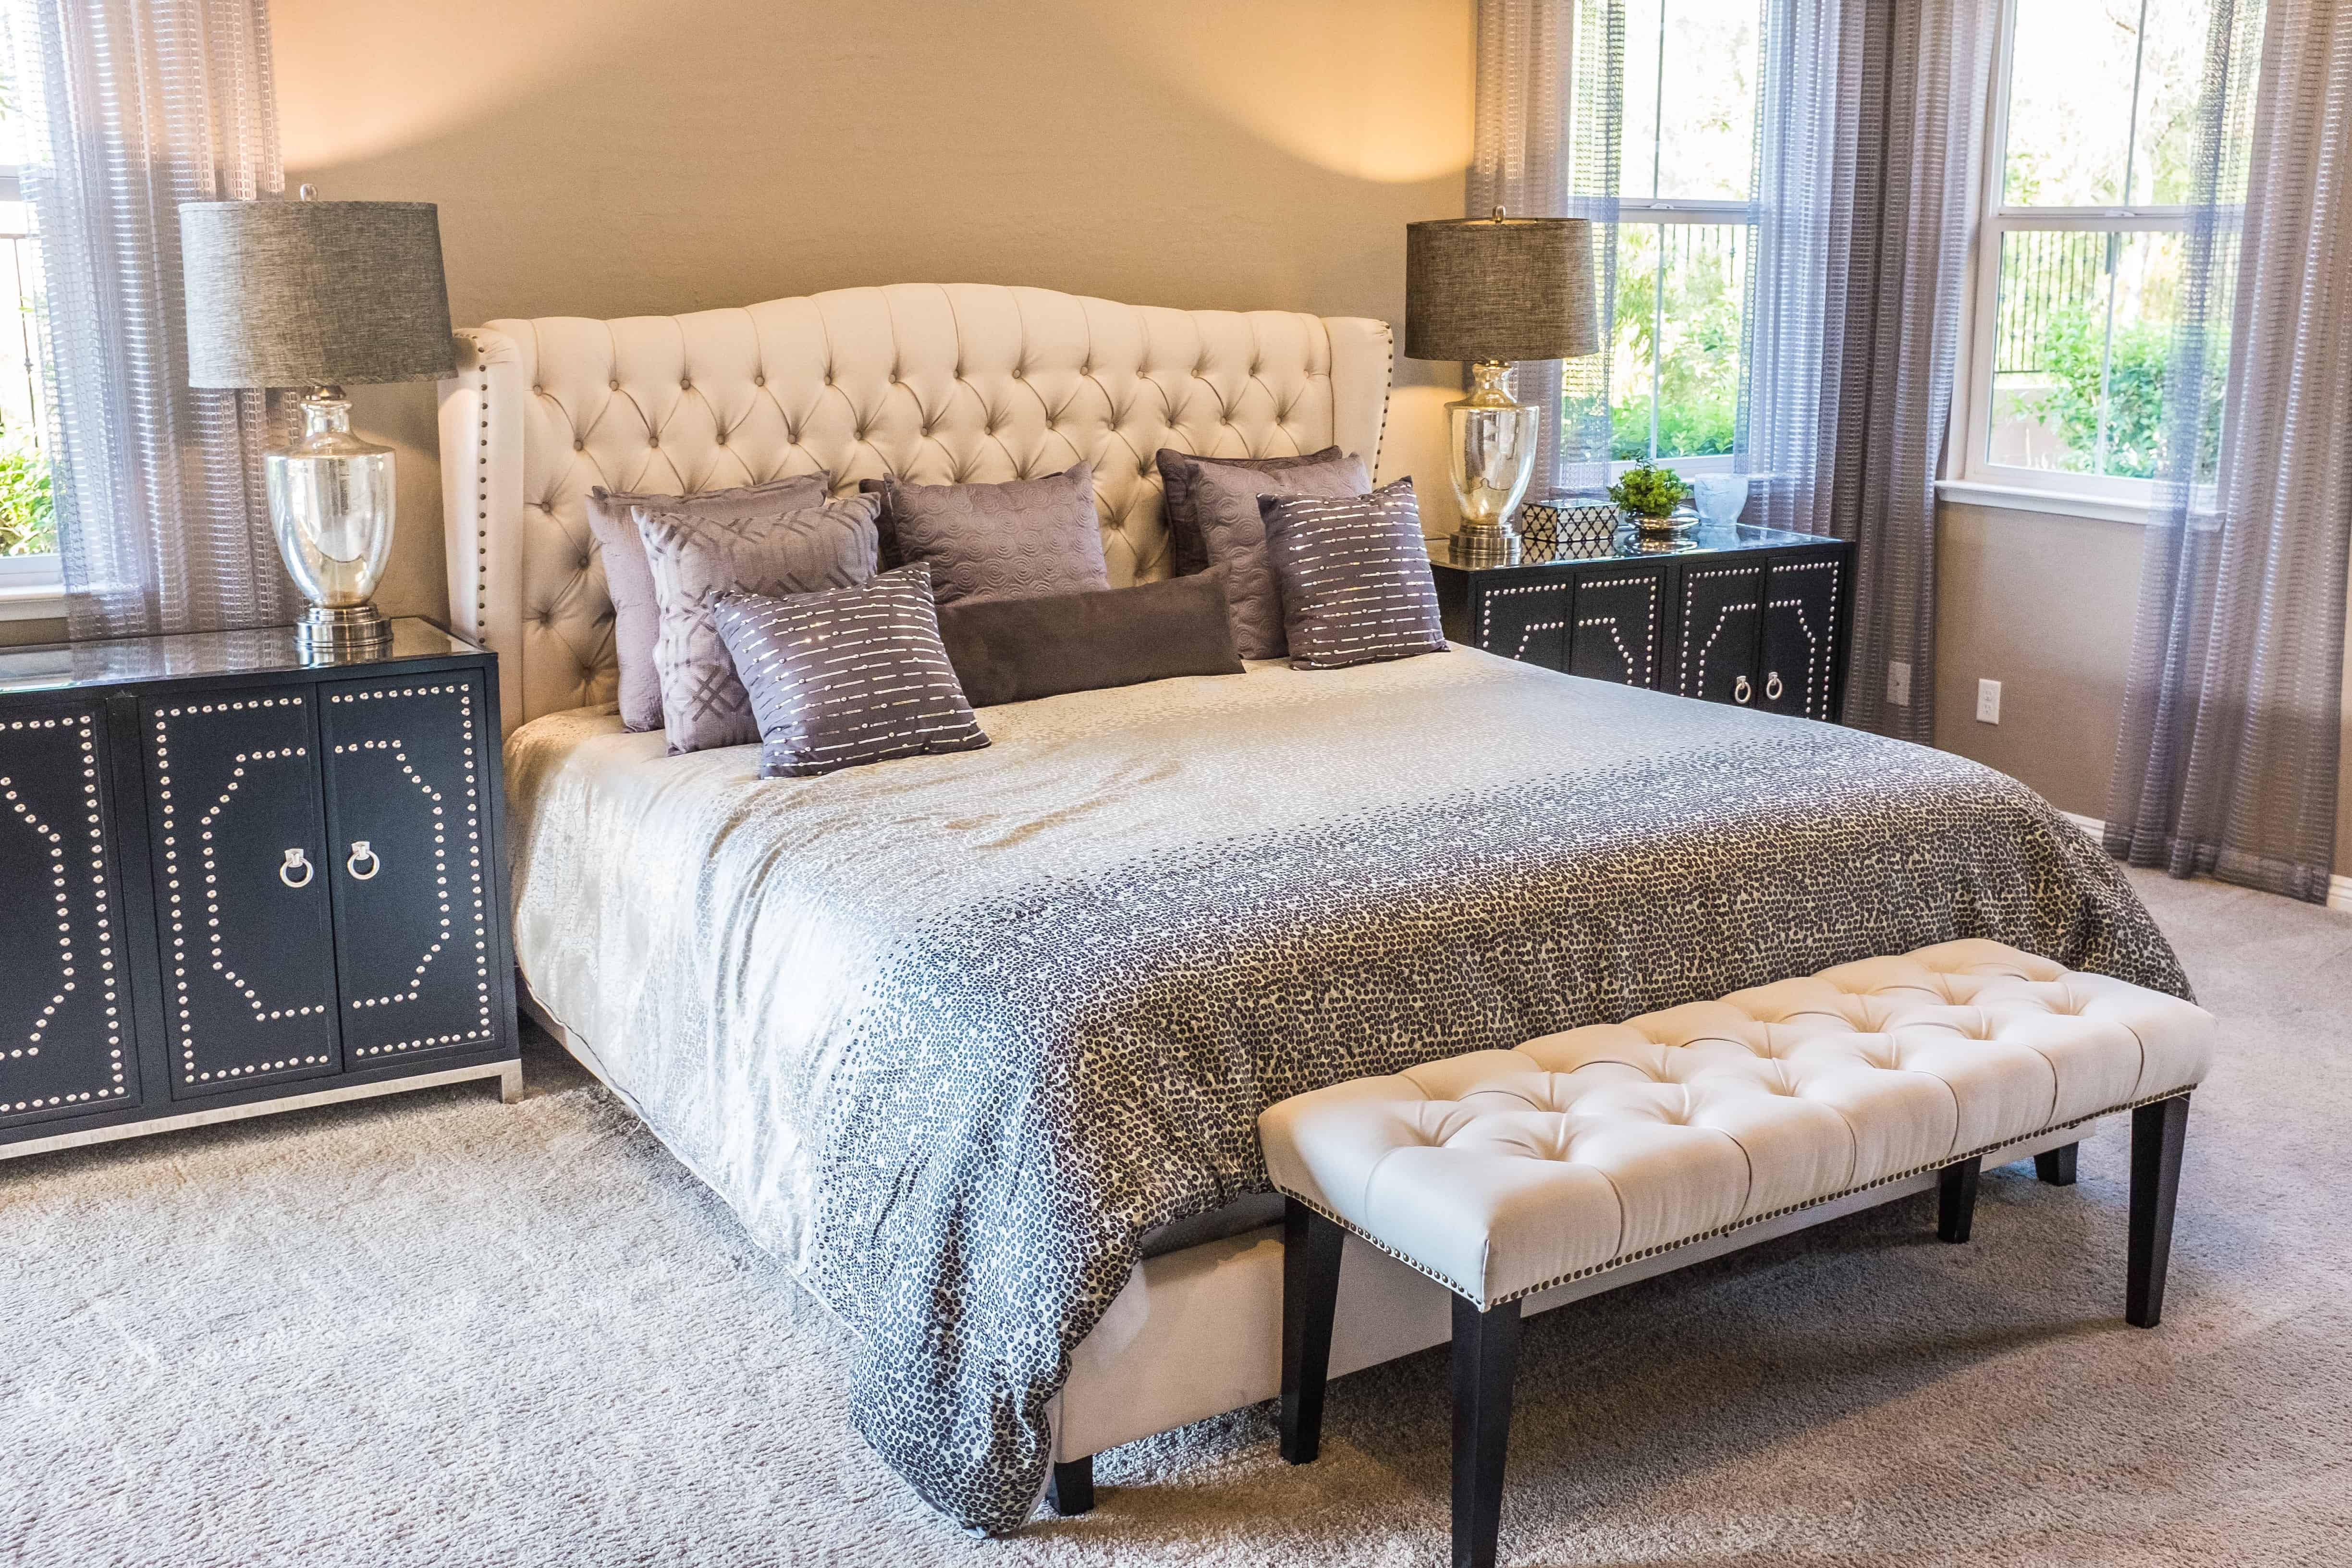 Antique Bedroom Furniture How to Style your Home: Masters bedroom bed, furniture, blanket, and pillows